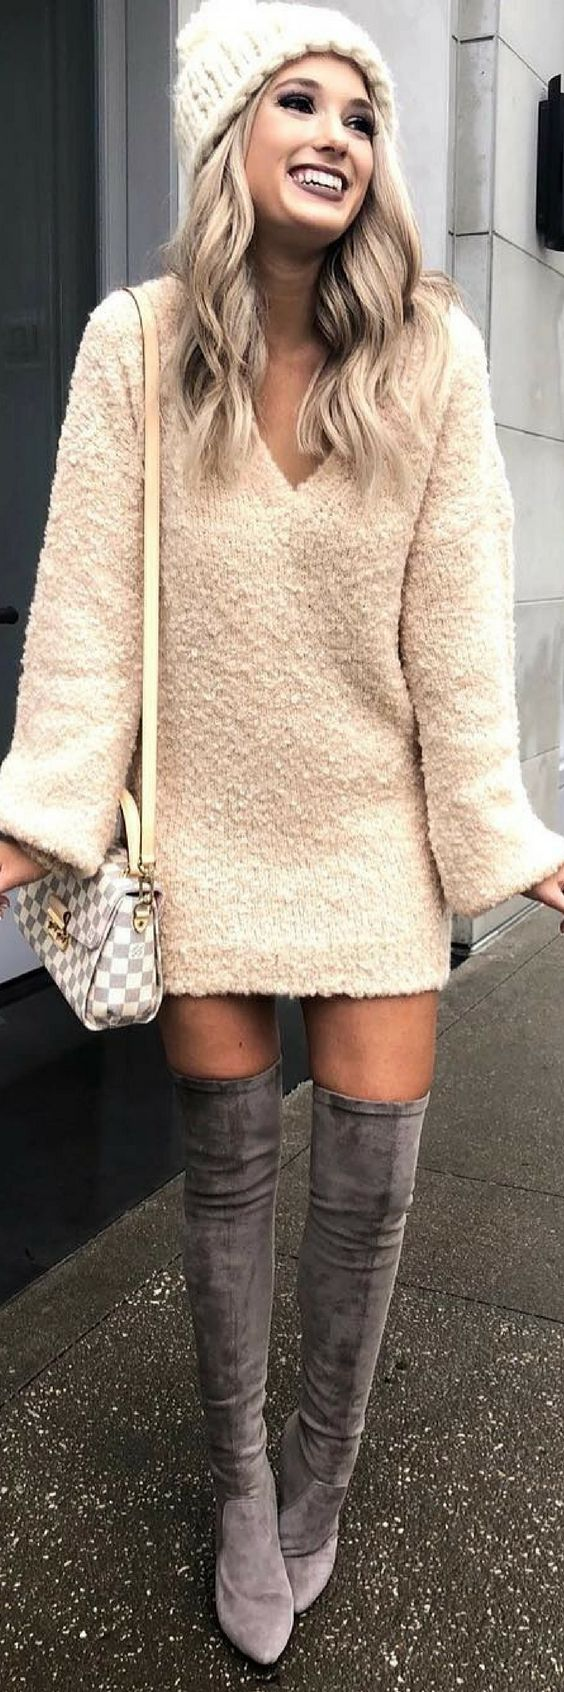 Look Amazing In 10 Of The Greatest Outfit Ideas For 2018 https://ecstasymodels.blog/2017/12/20/look-amazing-outfit-ideas/